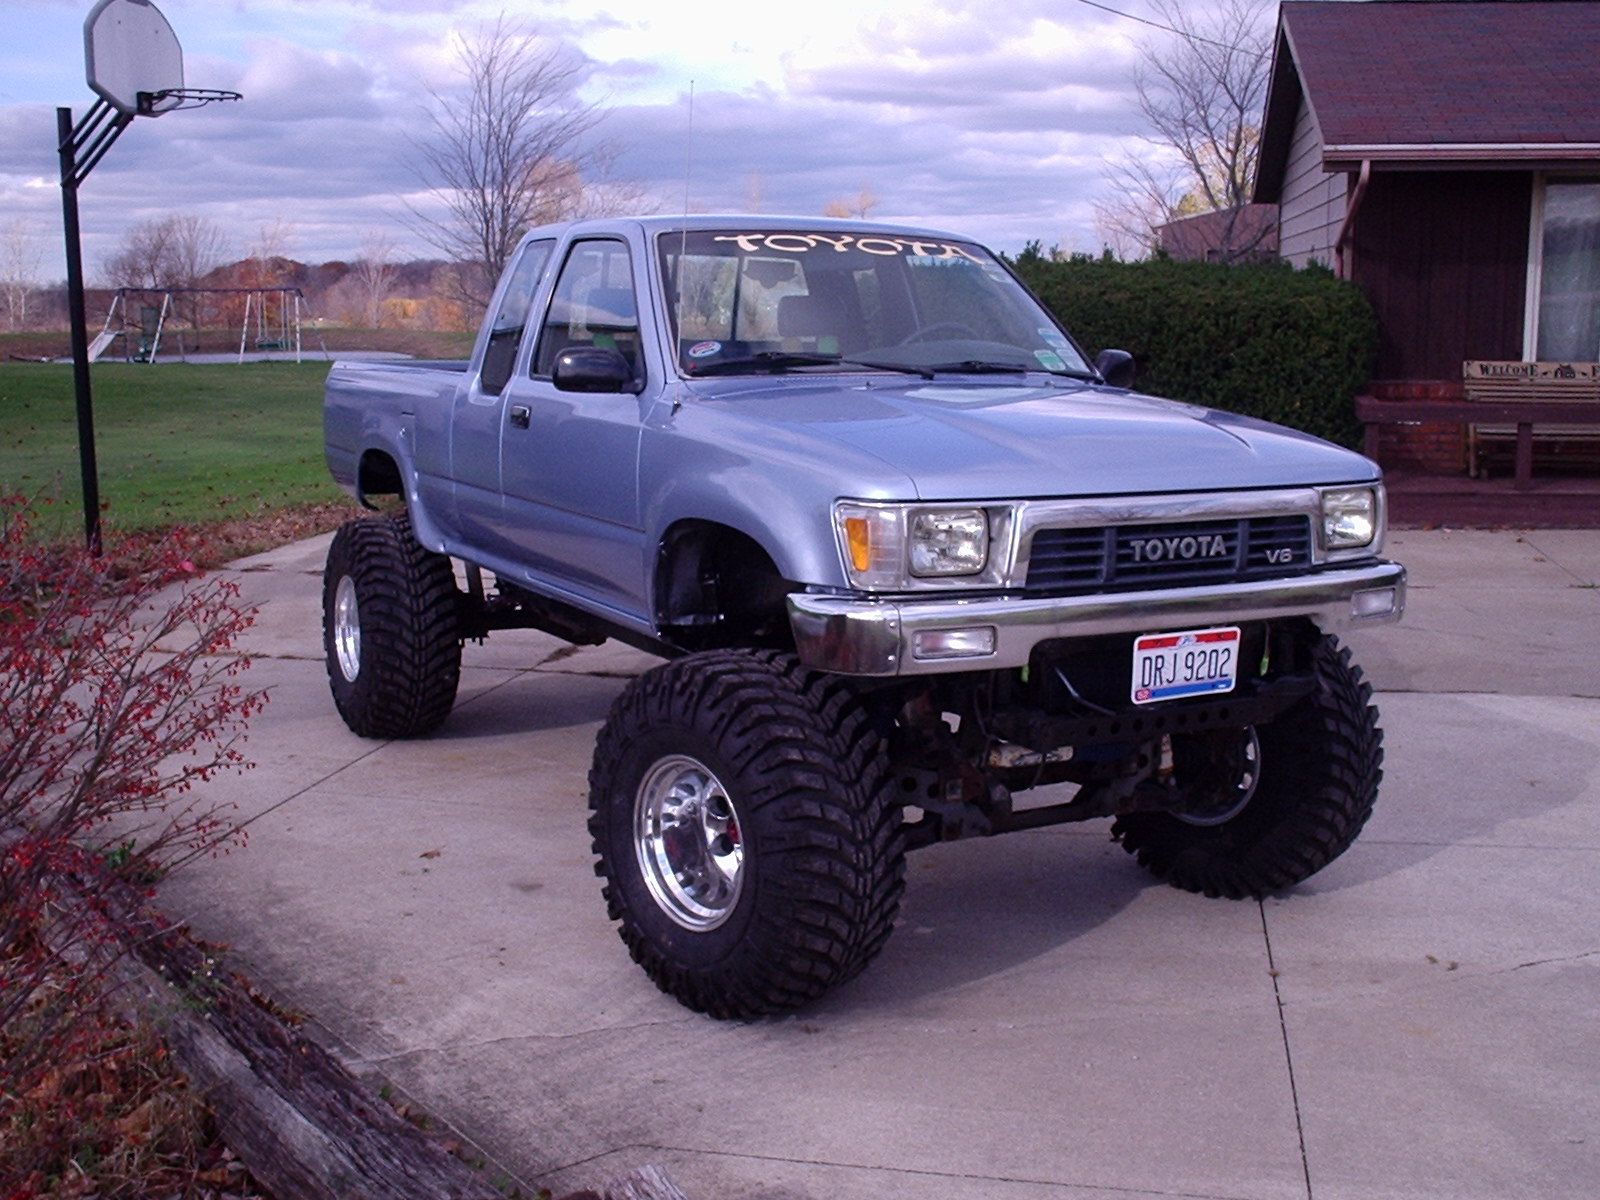 1989 toyota pickup a no frills truck that you could not kill was great in the snow bought it for 5k drove it for 100k miles then sold it for 3